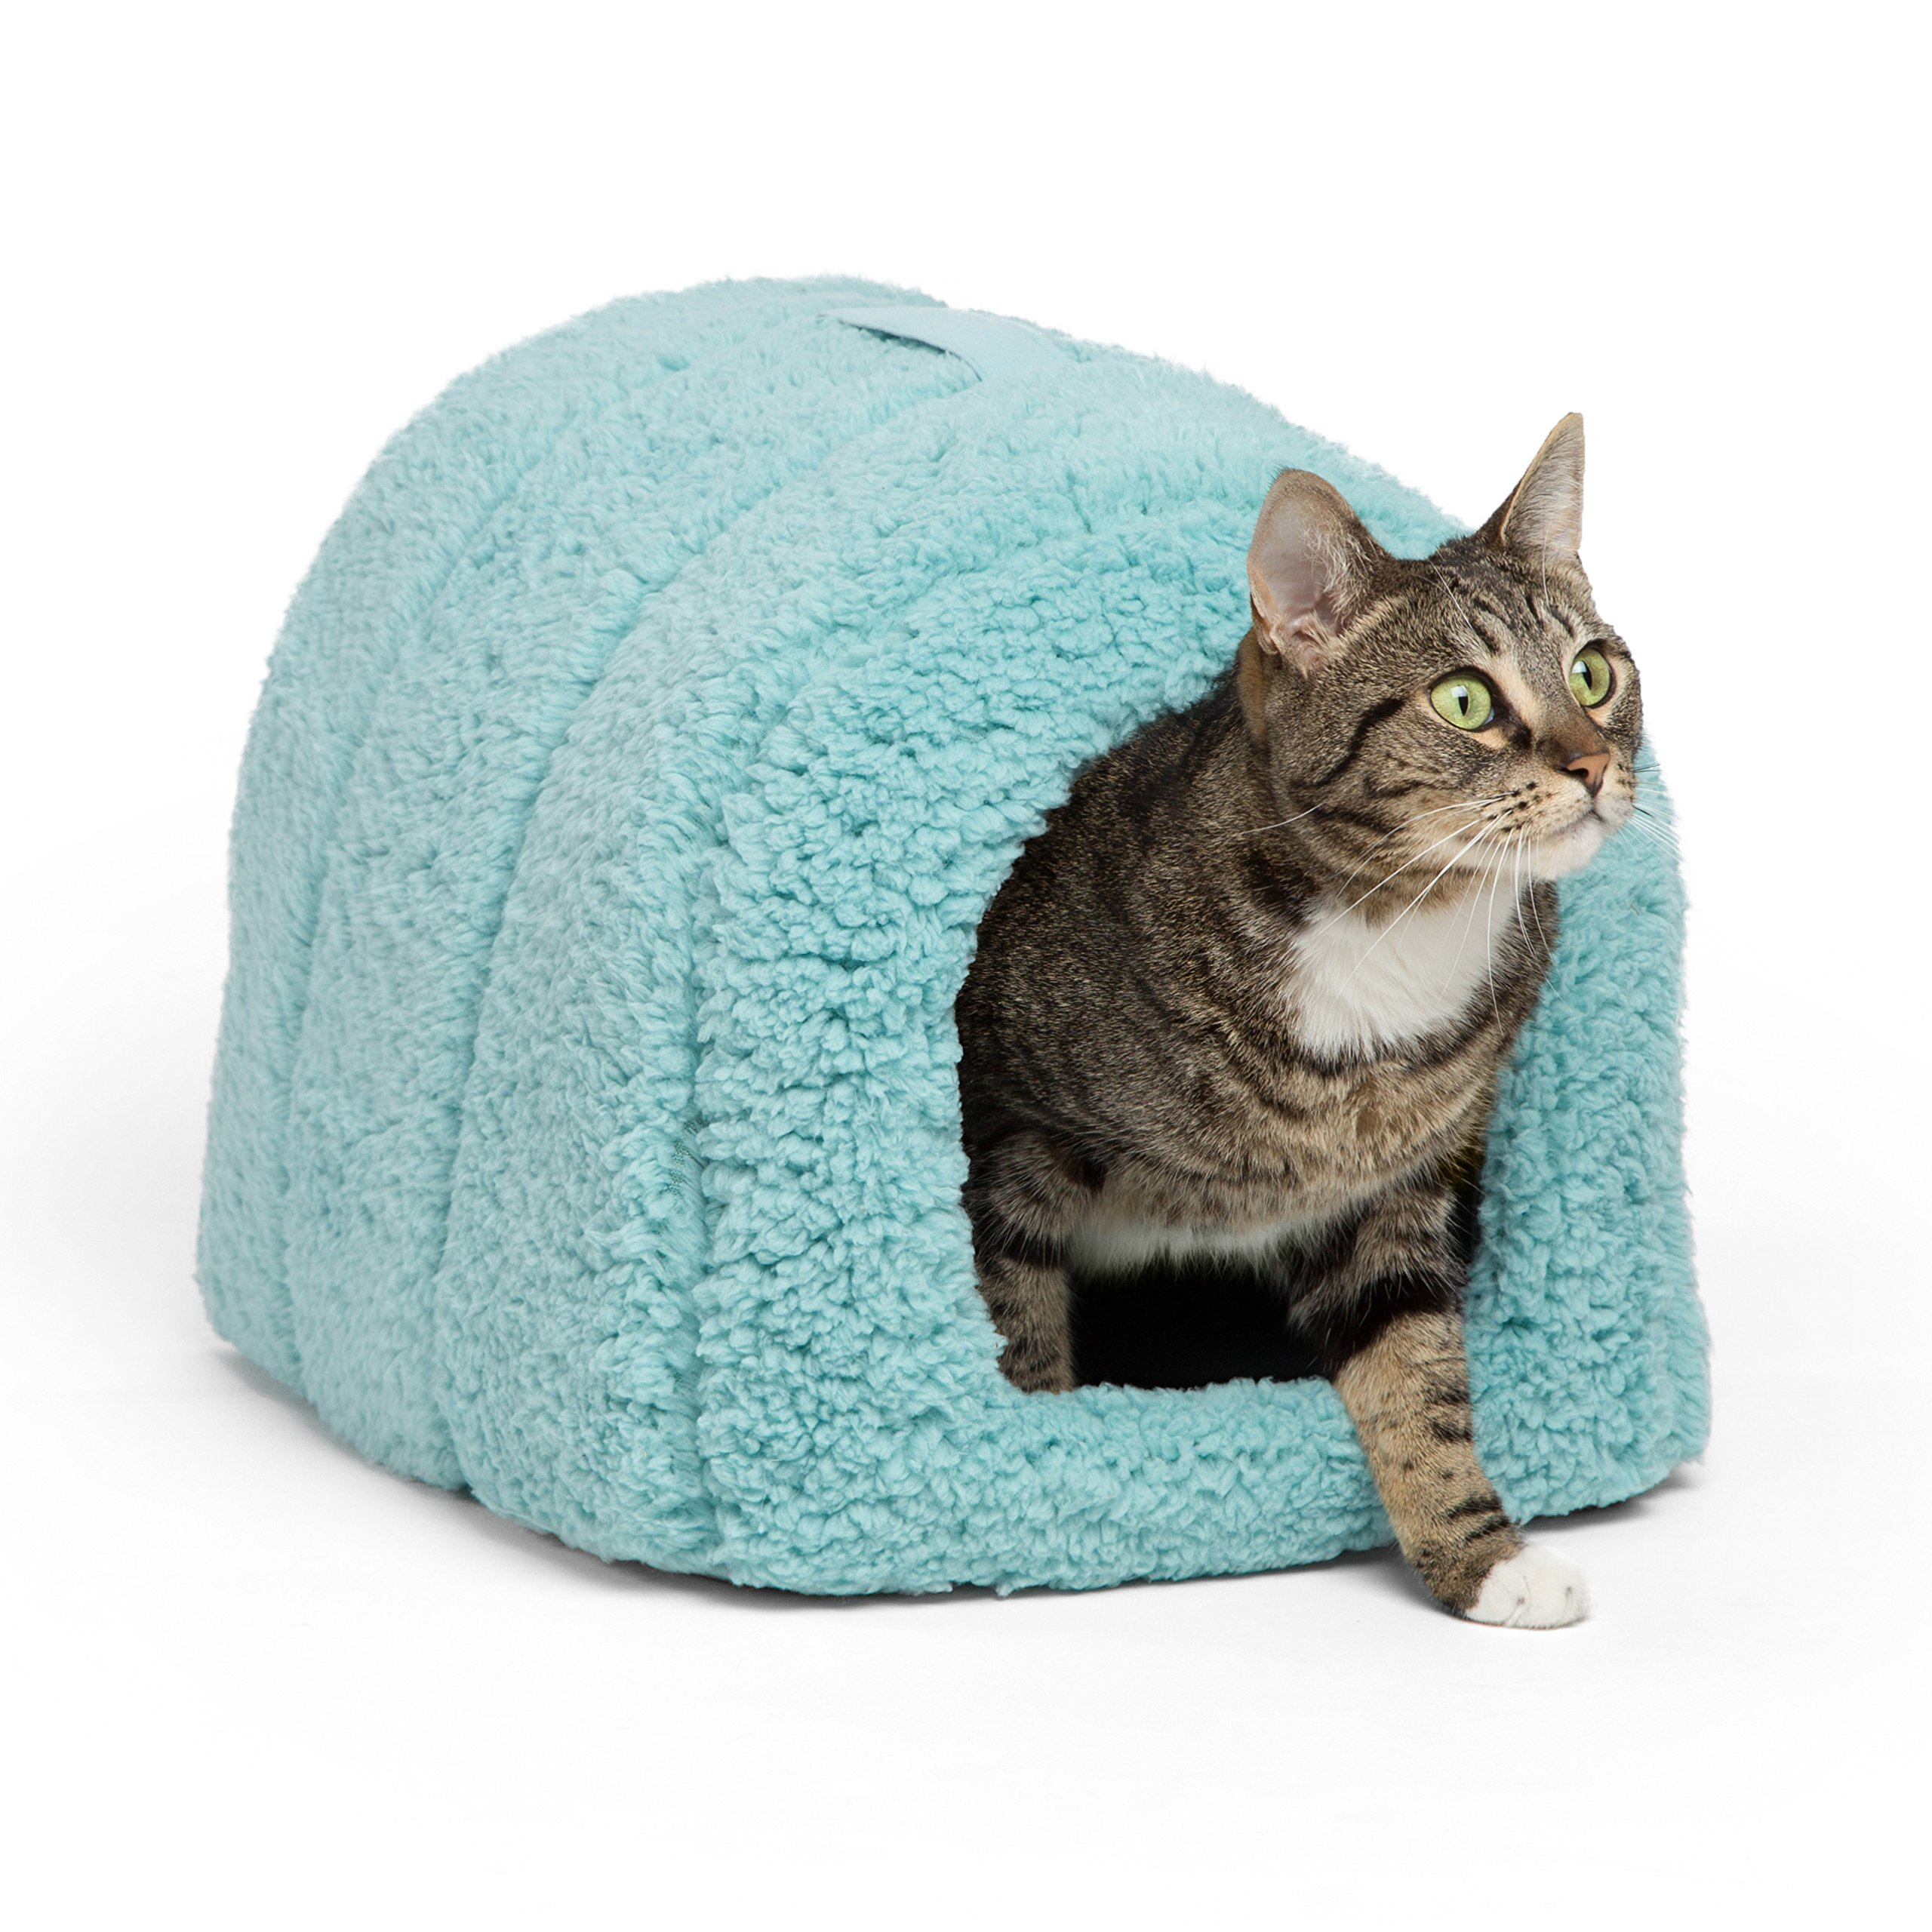 Best Friends by Sheri Pet Igloo Hut, Sherpa, Teal - Cat and Small Dog Bed Offers Privacy and Warmth for Better Sleep - 17x13x12'' - For Pets 9lbs or Less